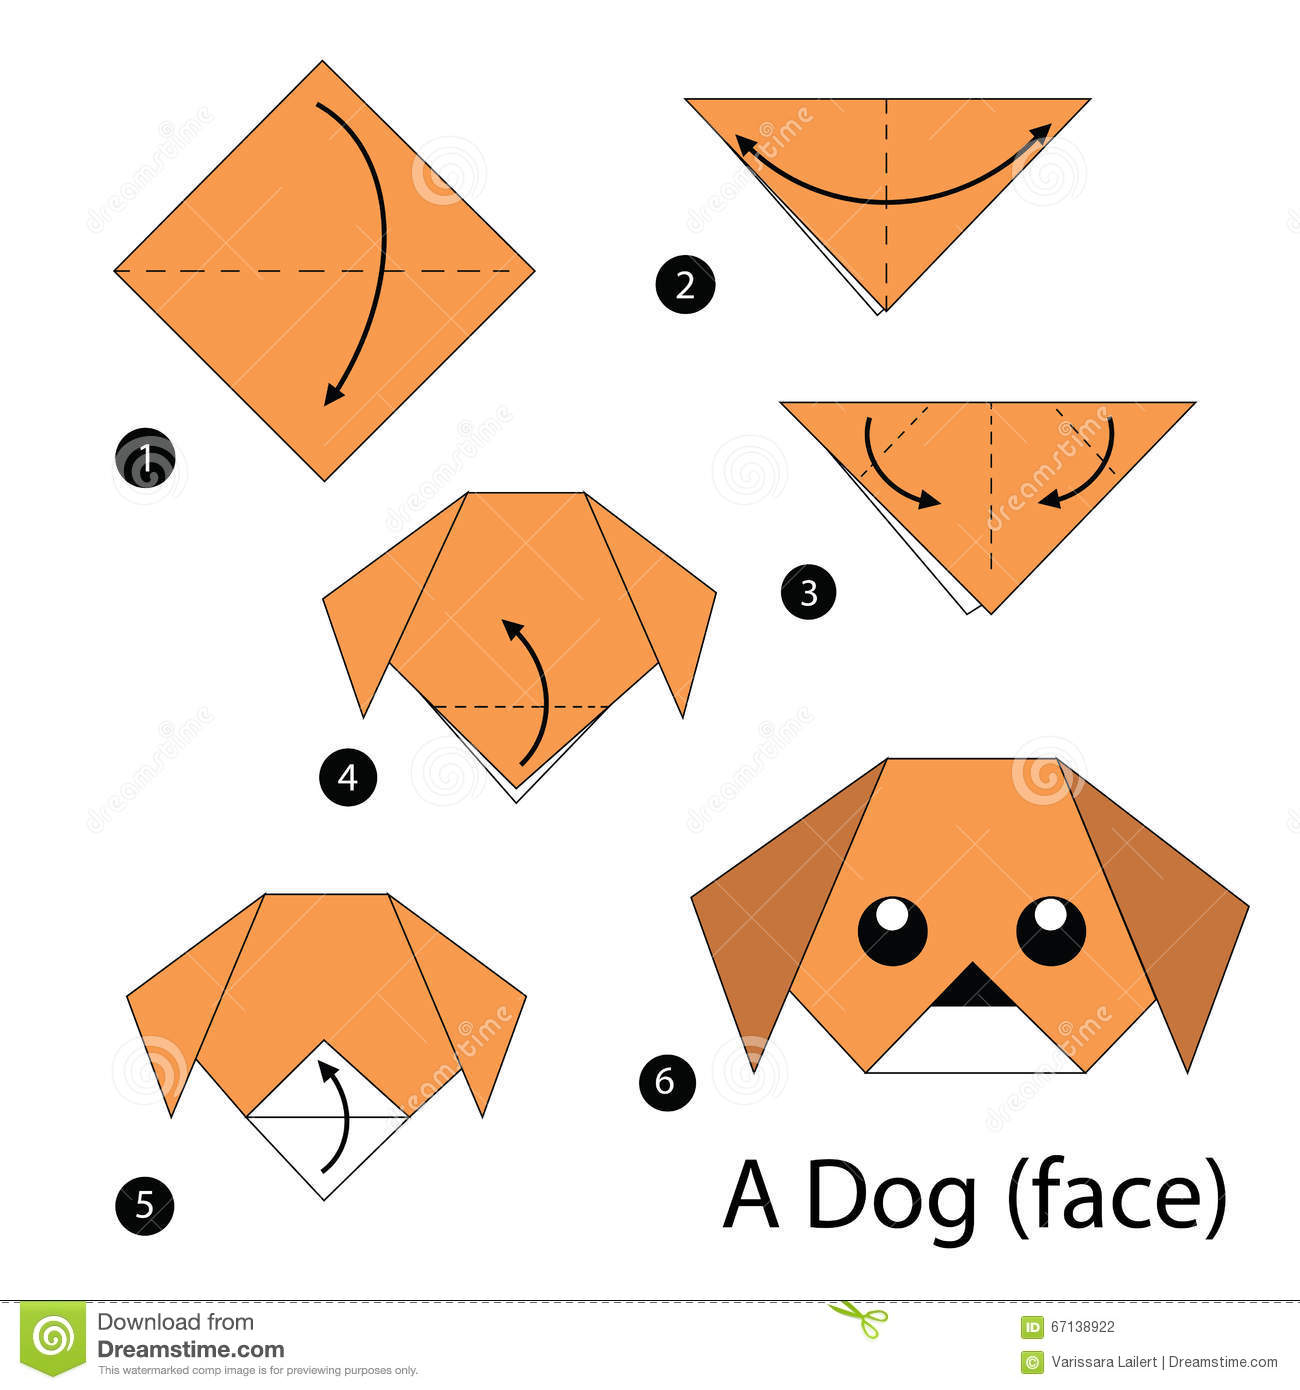 Origami dog face how to origami - Dog Face Illustration Instructions Origami